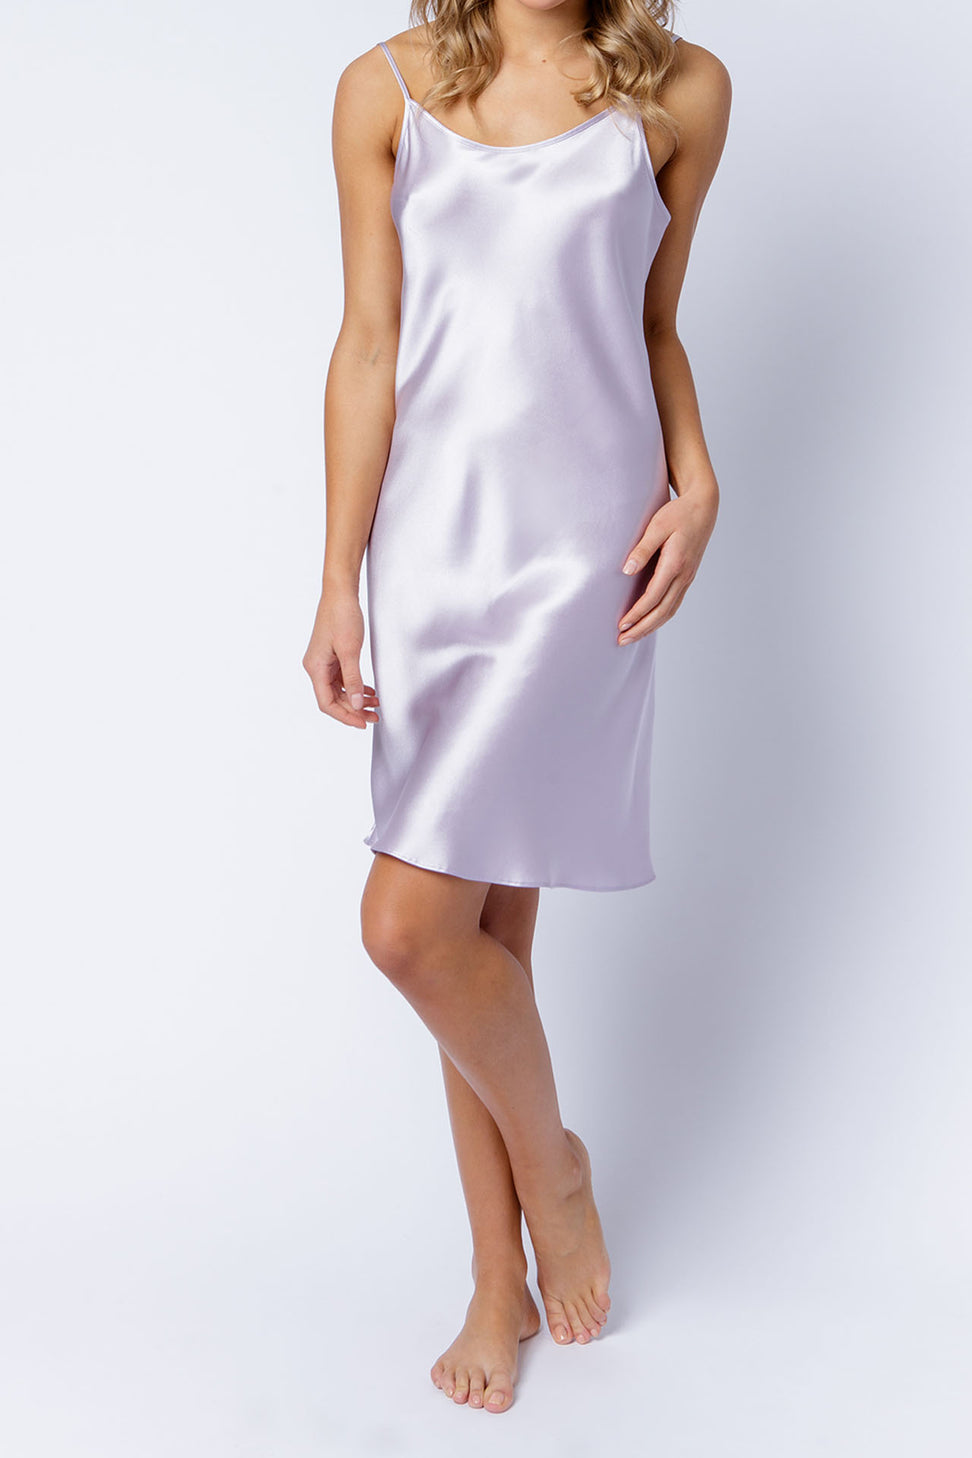 Estelle slip dress in orchid, front alt